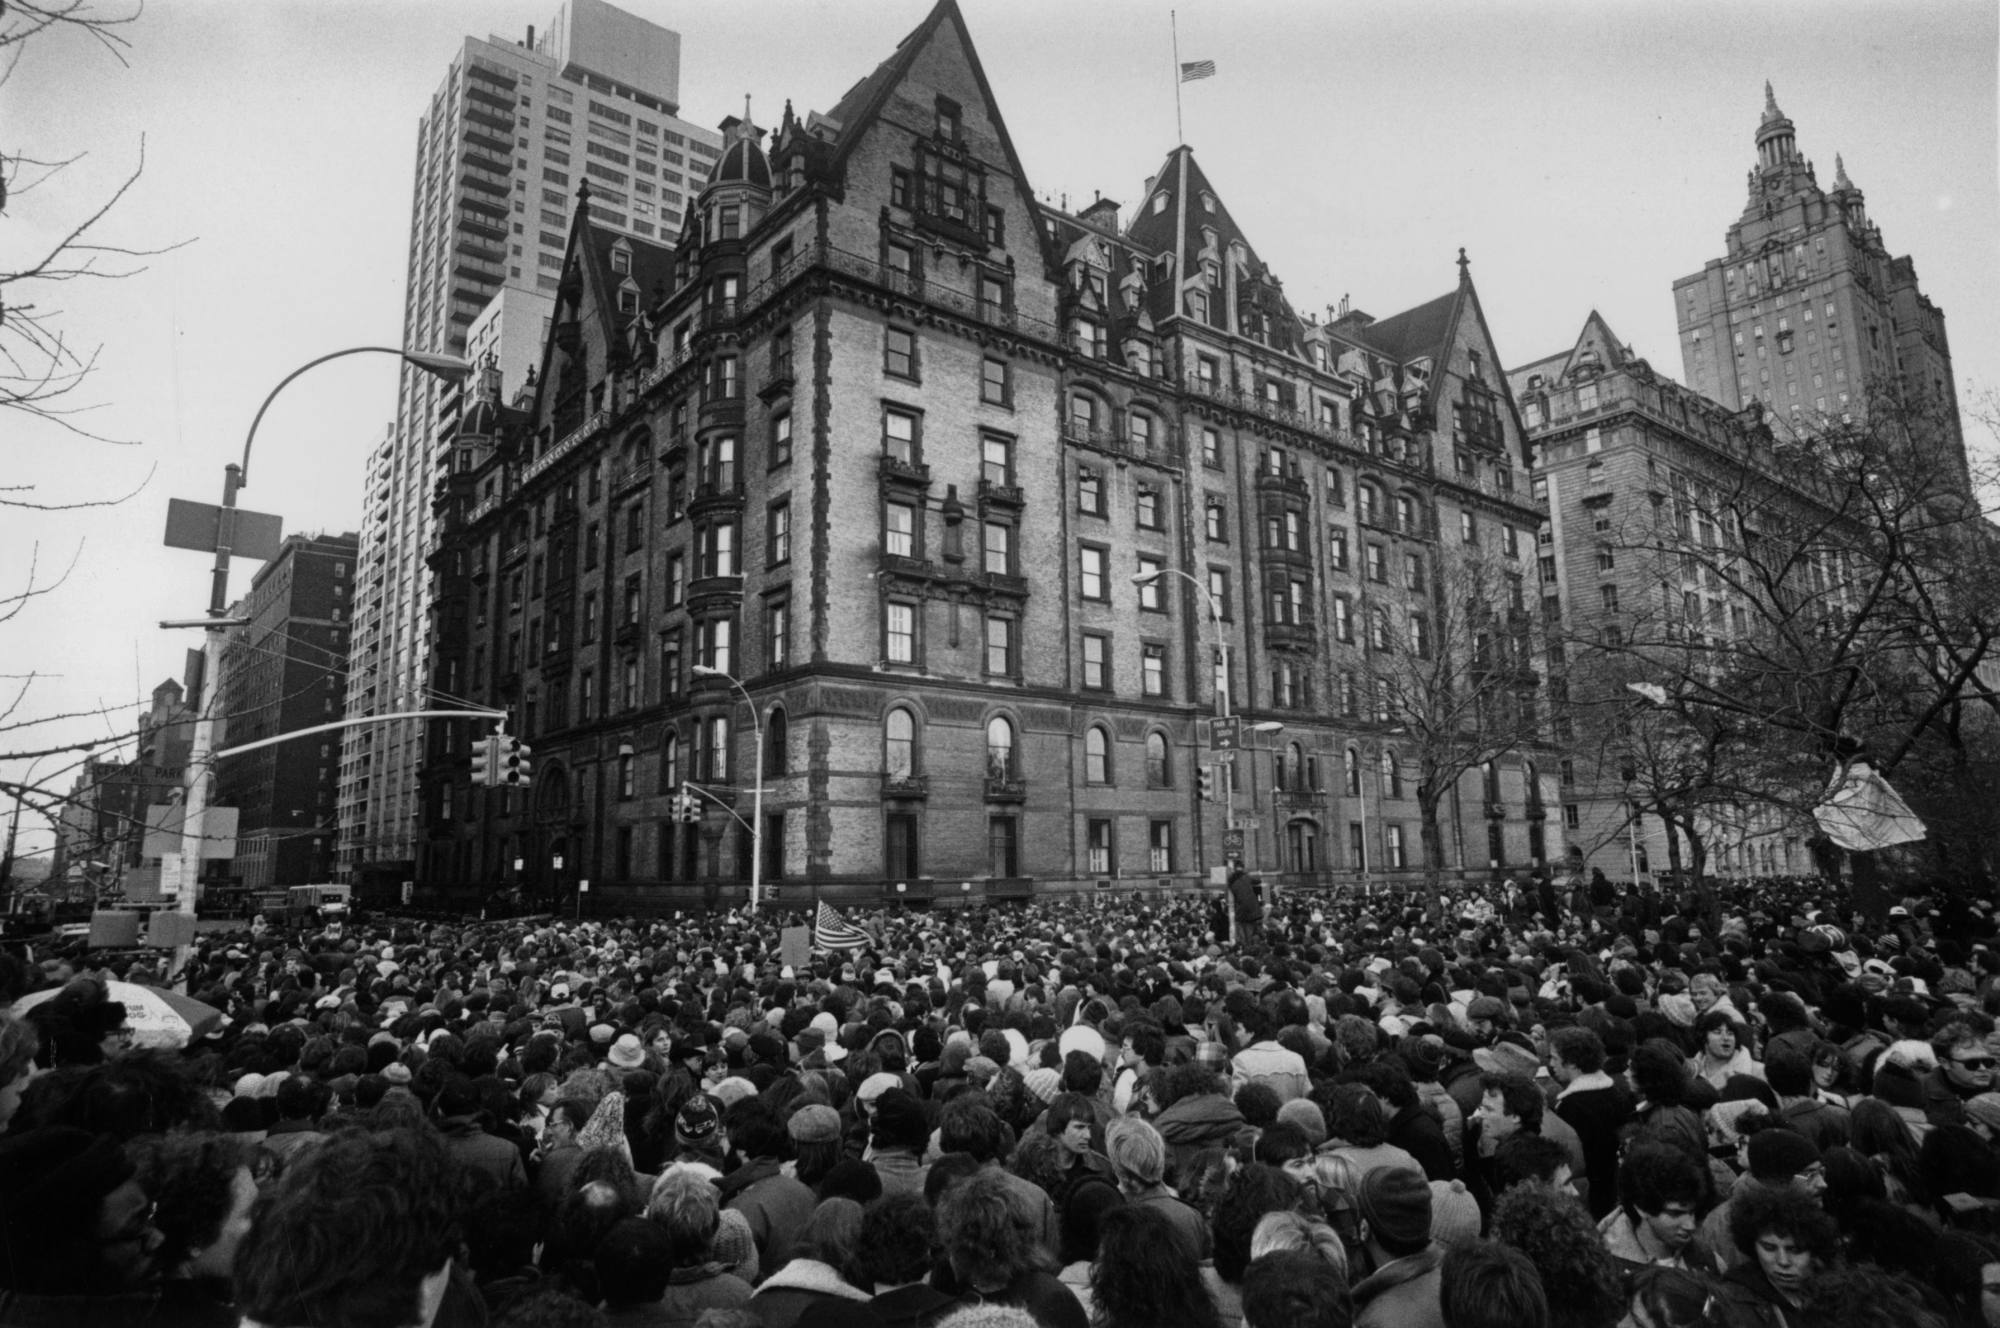 Crowds gather outside the home of John Lennon in New York in December, 1980, after the news that he had been shot and killed. Photo: Getty Images